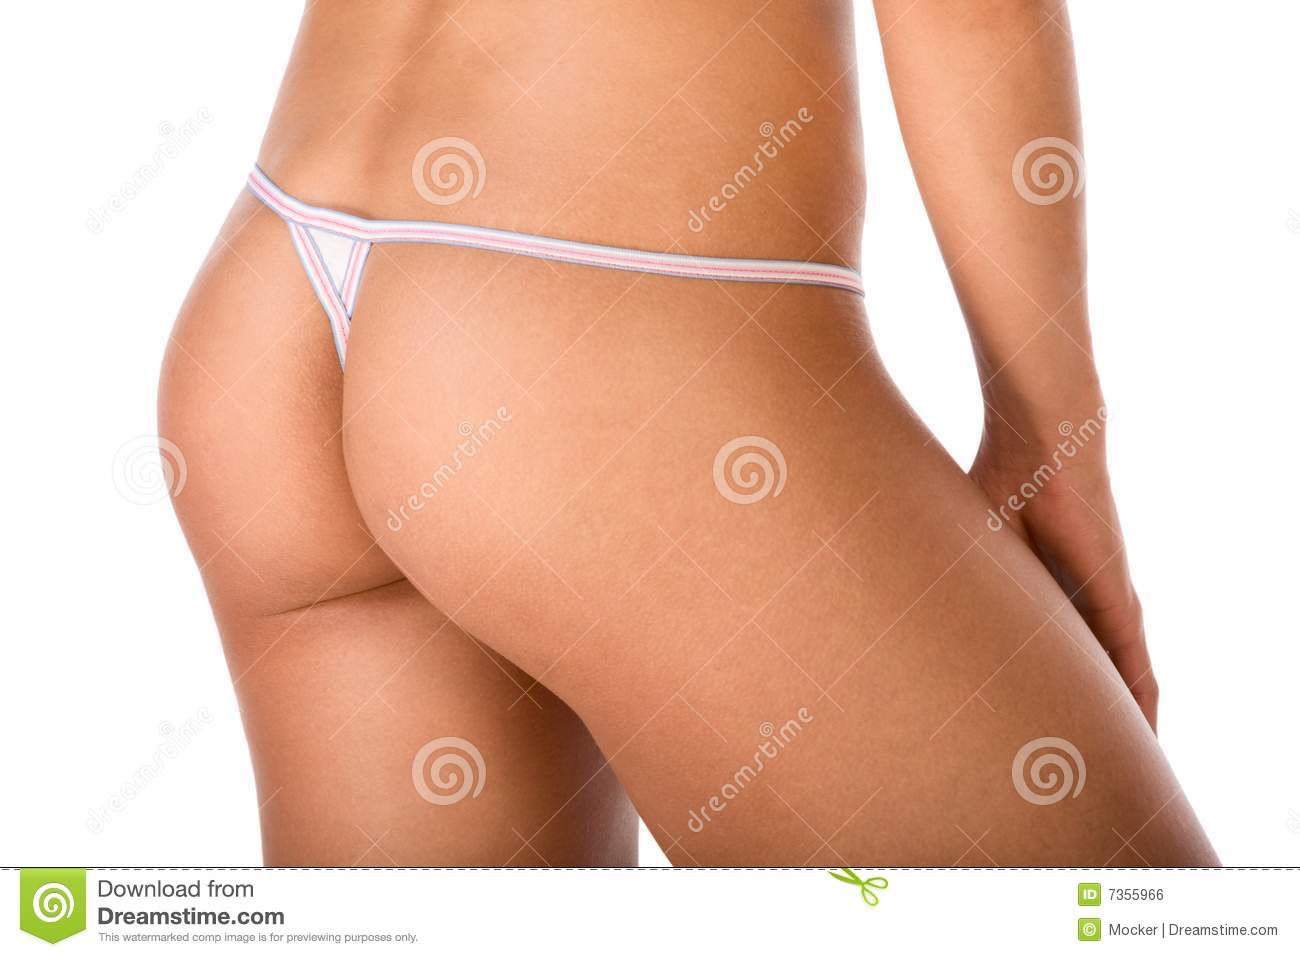 how to tell if a girl is wearing a thong